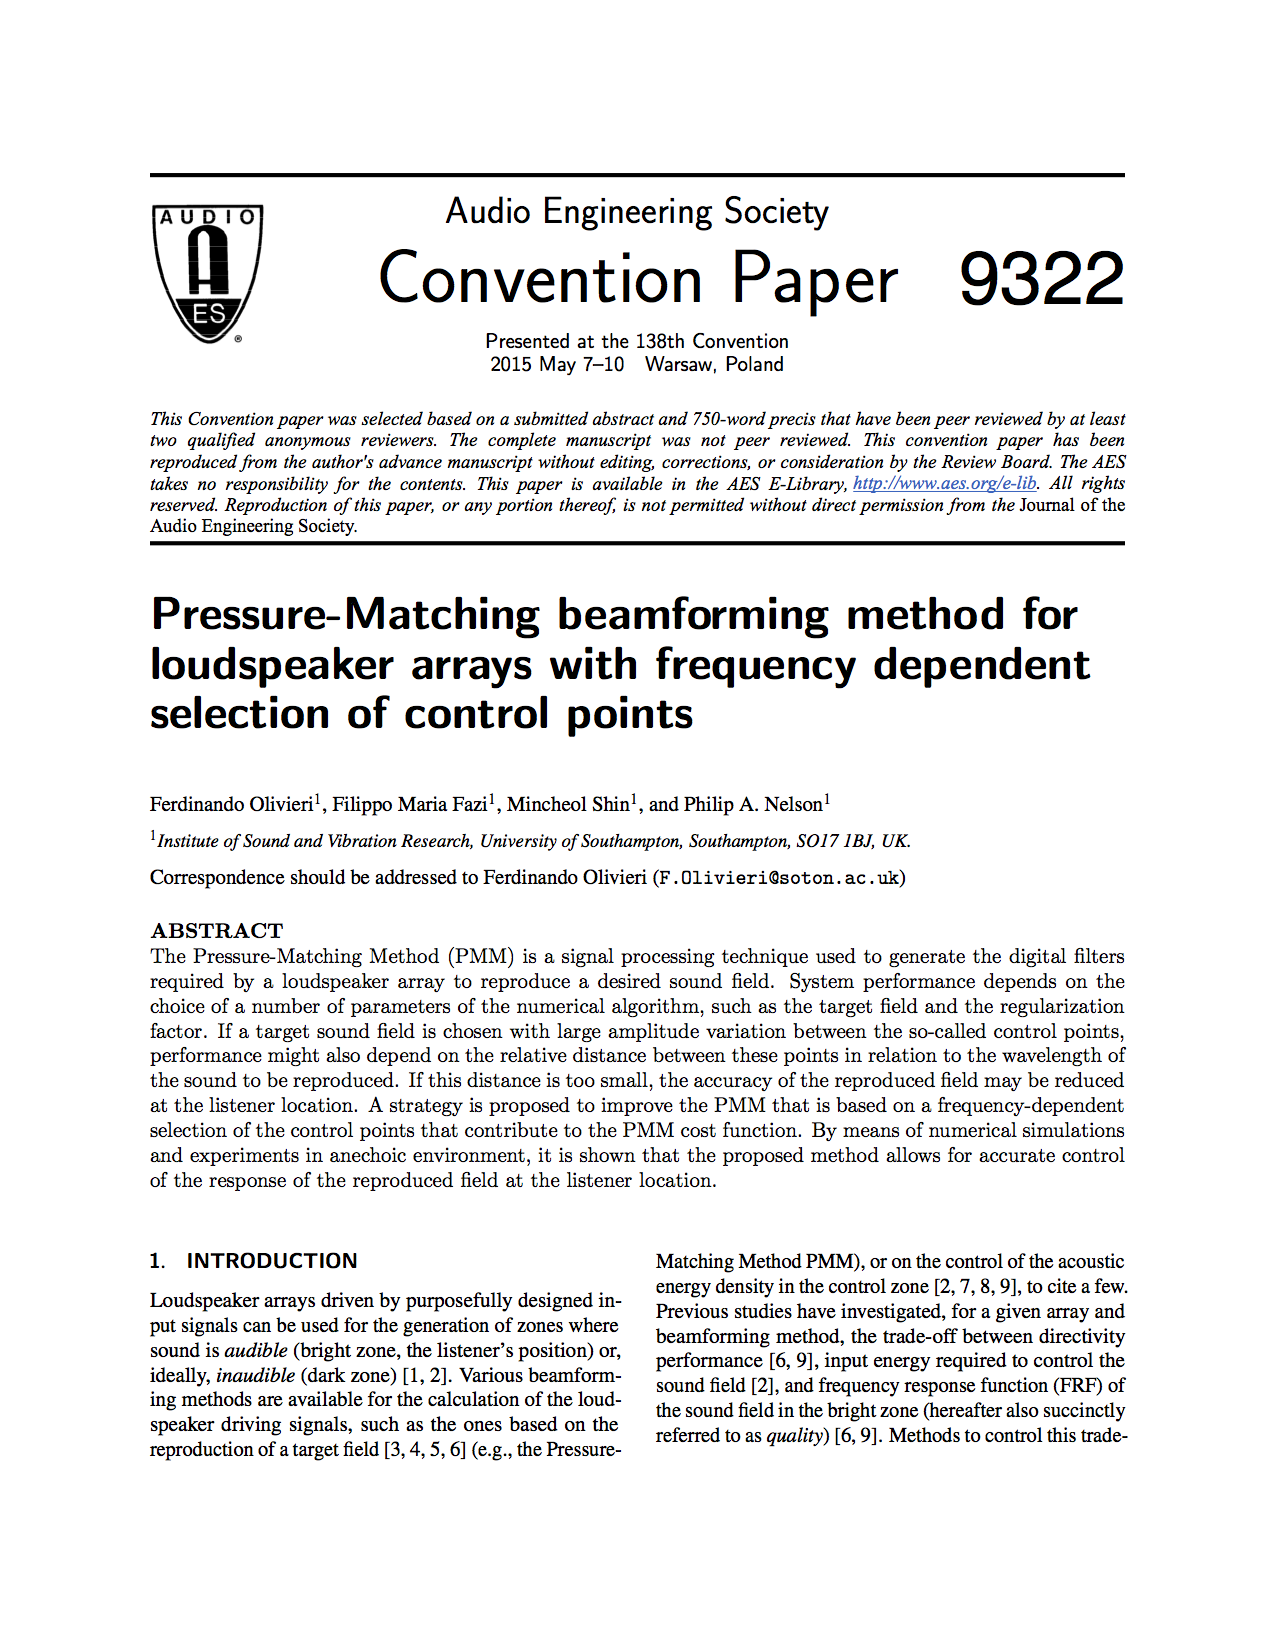 AES E-Library » Pressure-Matching Beamforming Method for